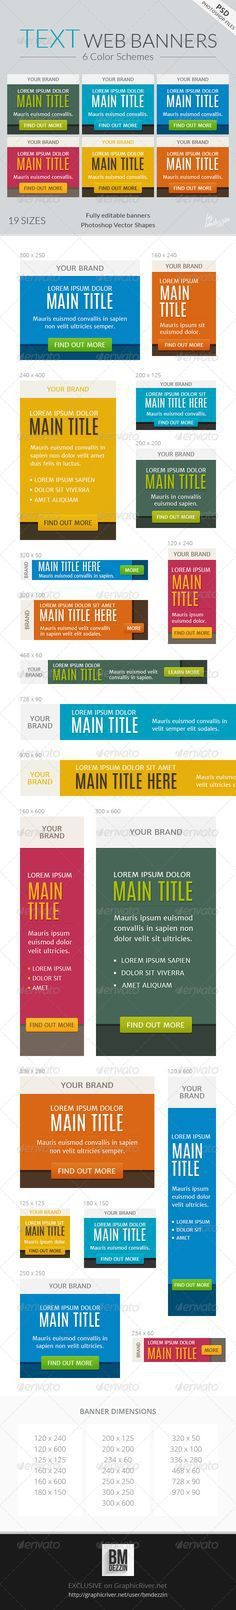 Web Banners for E-Book and Digital Products | Web banners, Banners ...